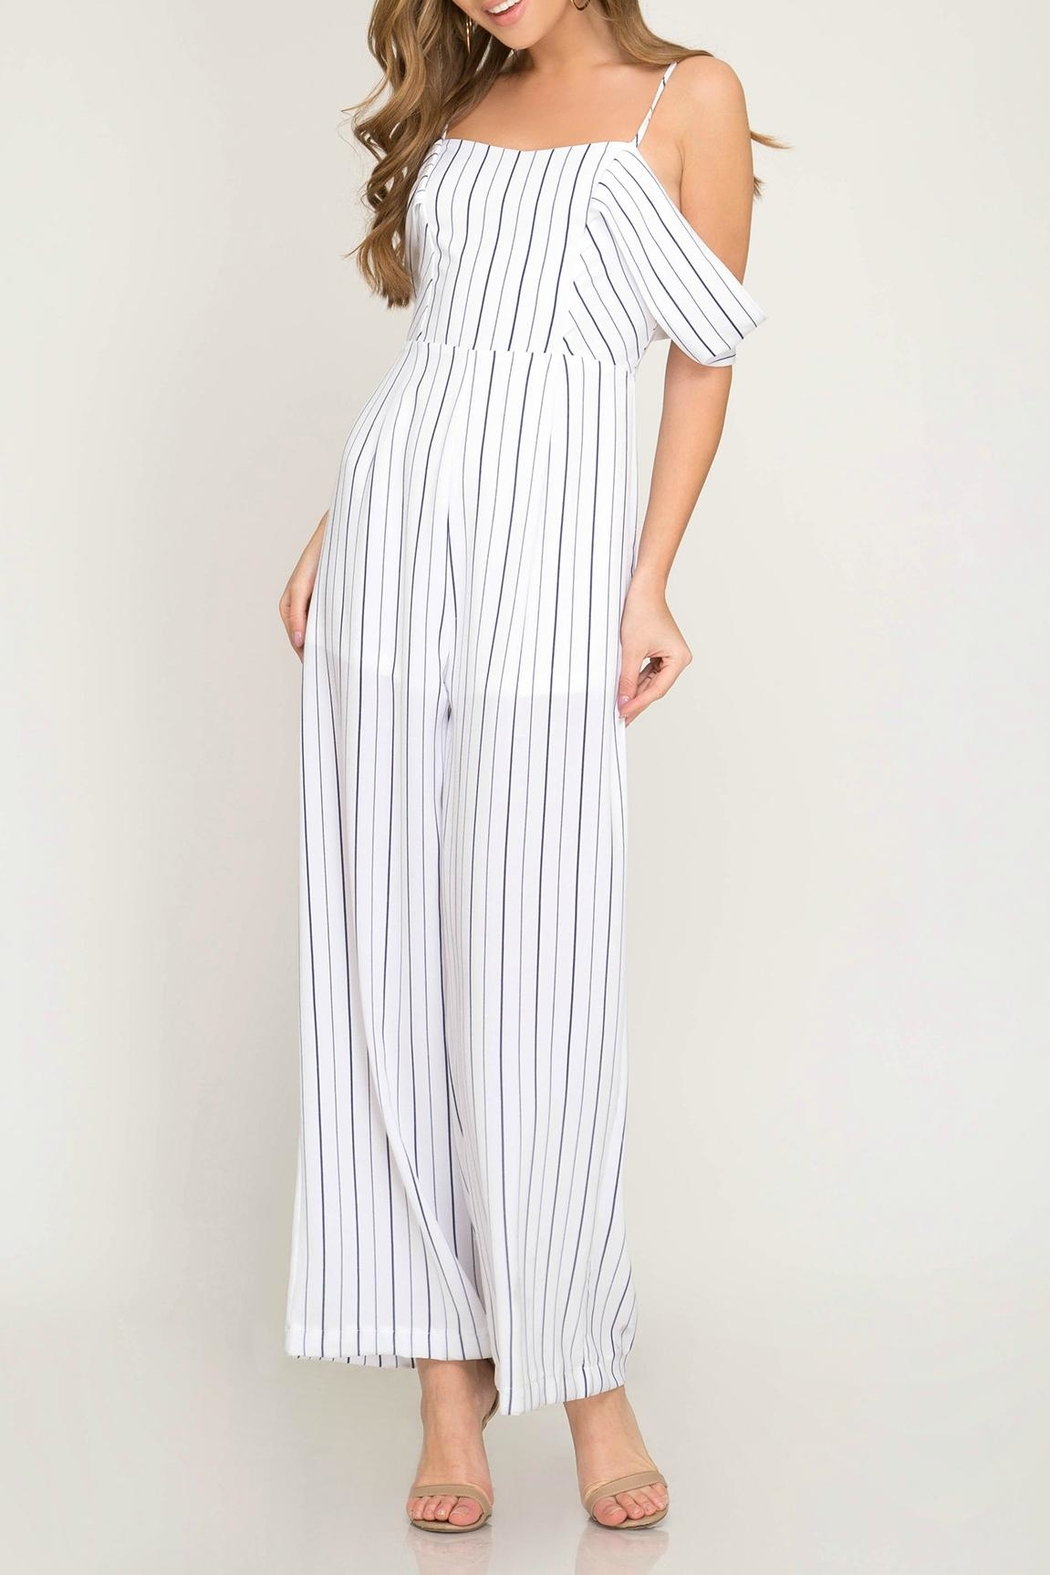 825ff9e6aeb6 She + Sky Cold Shoulder Jumpsuit from Massachusetts by Moxy Boutique ...